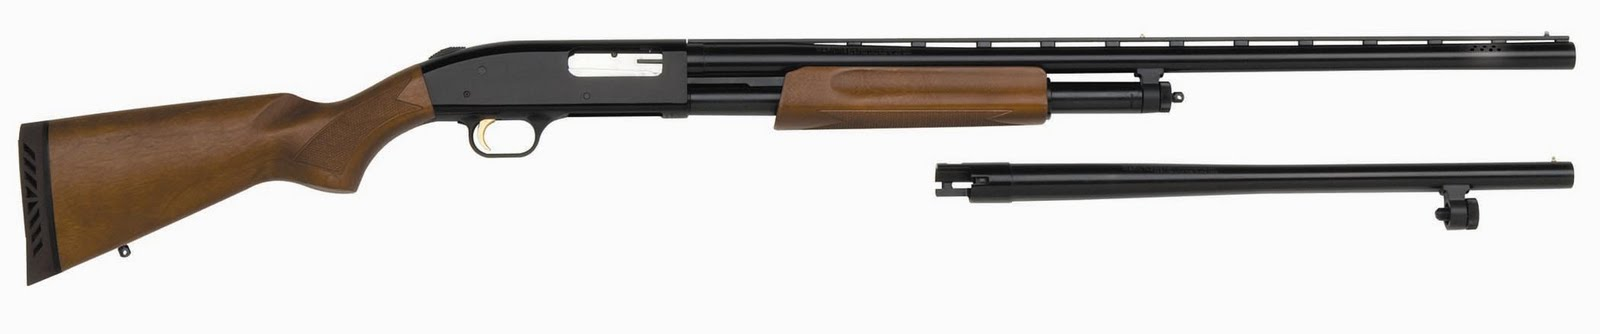 Some shotgun questions before my first purchase - General Shotgun Discussion